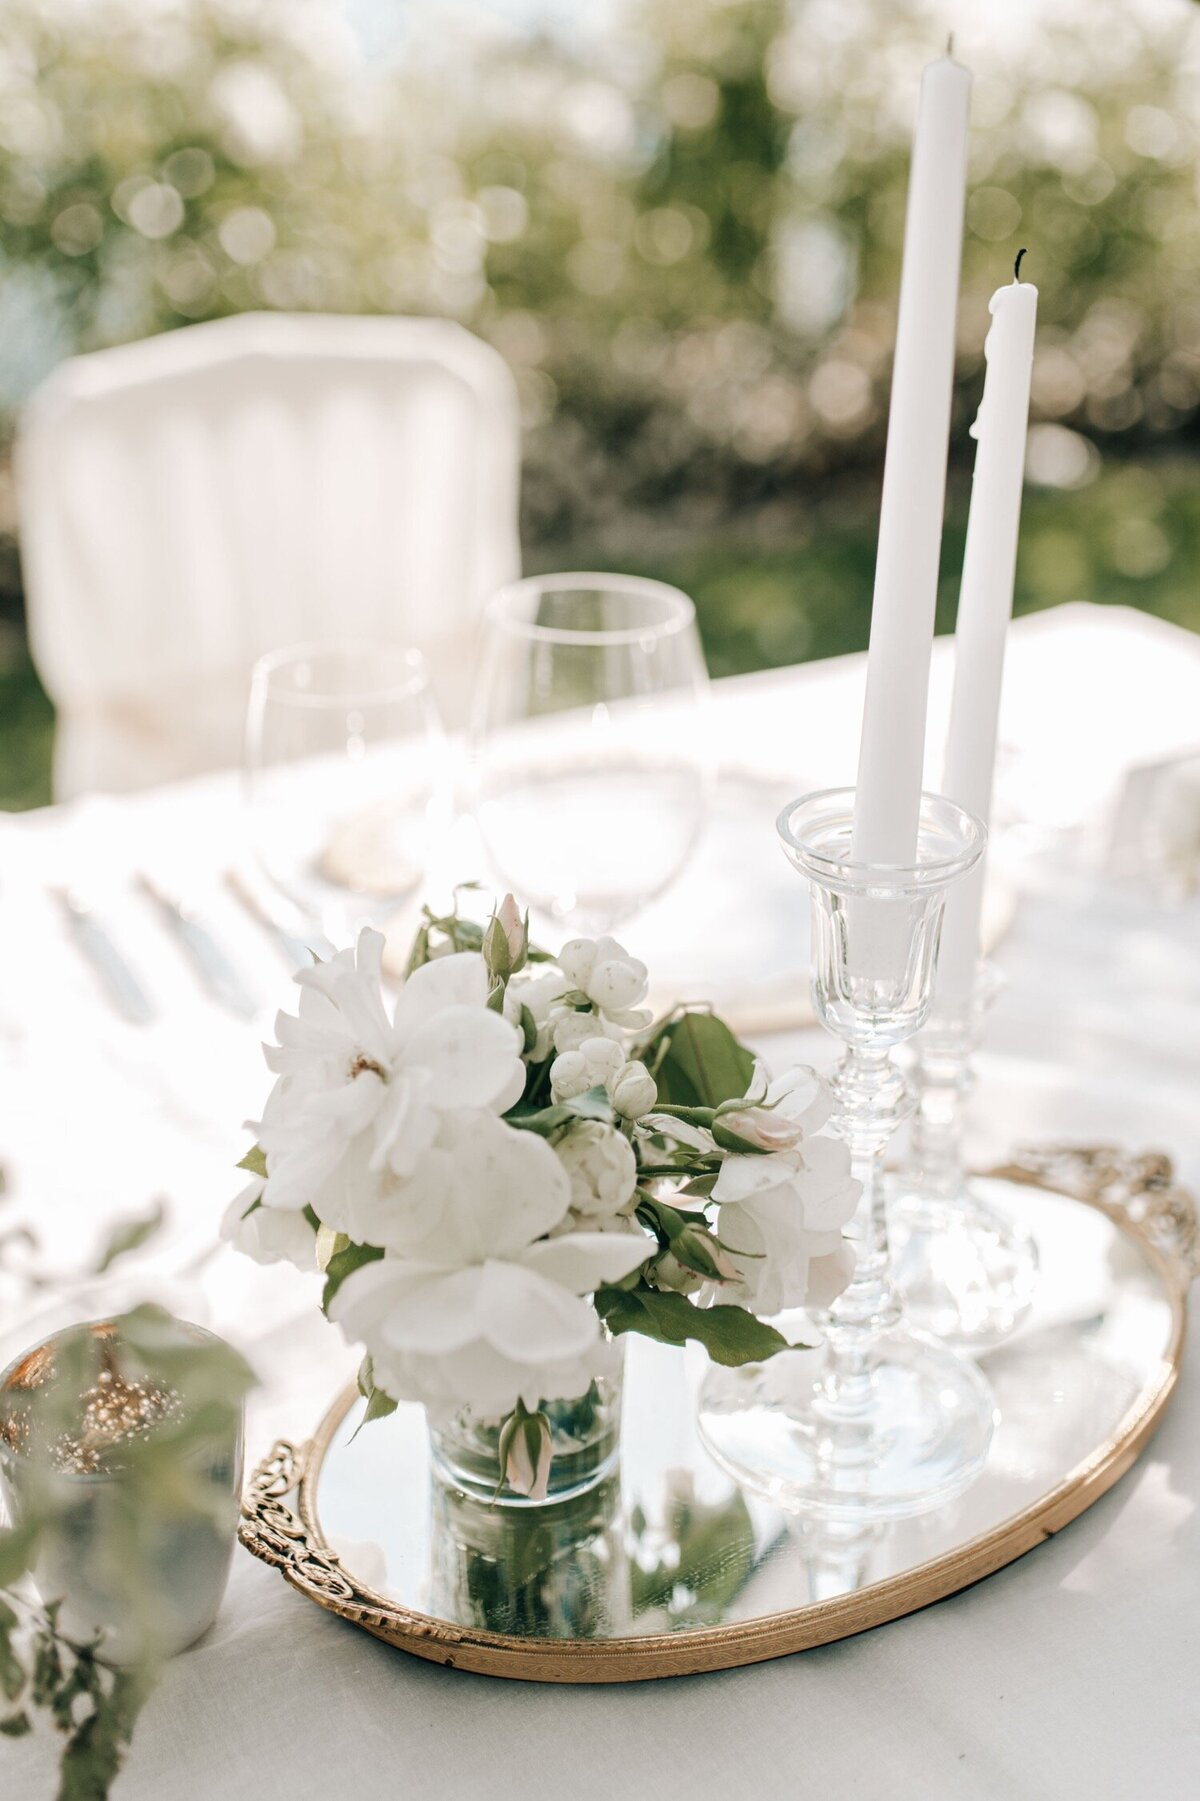 101_Villa_Cimbrone_Amalfi_Coast_Luxury_Wedding_Photographer (101 von 101)_Flora and Grace is a luxury wedding photographer at the Amalfi Coast. Discover their elegant and stylish photography work at the Villa Cimbrone.